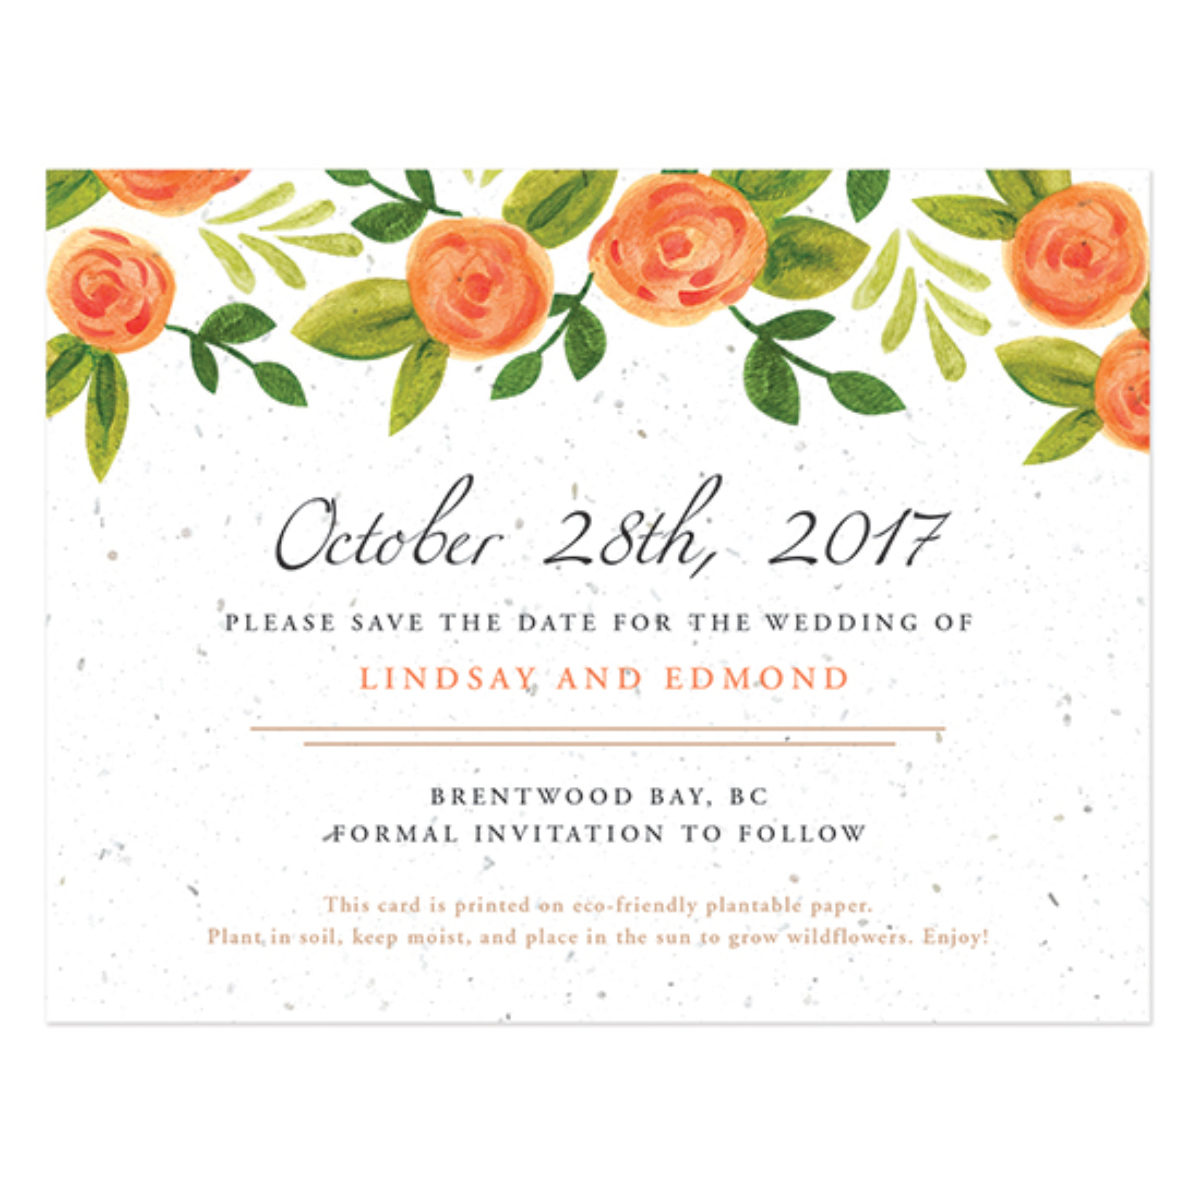 Plantable Seed Paper Eco-friendly Sustainable Biodegradable Wedding Save the Date Invitation Roses